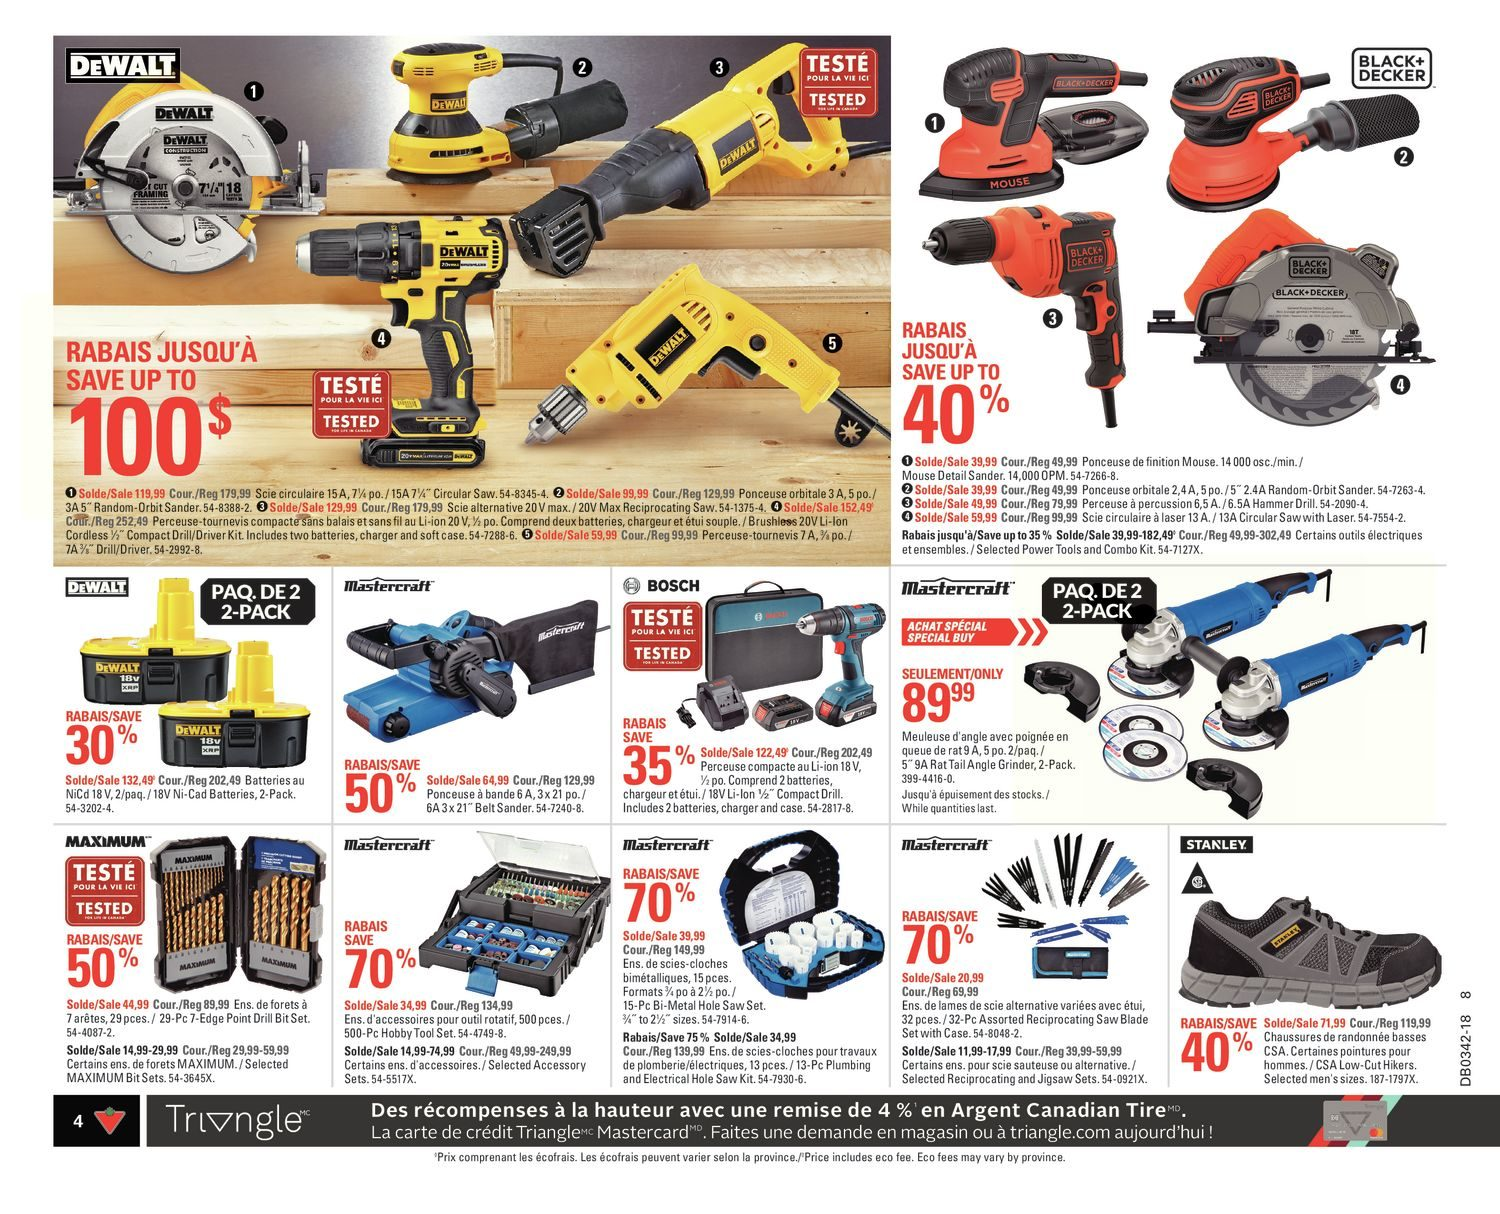 Canadian Tire Weekly Flyer - Weekly - Power Up Fall - Oct 11